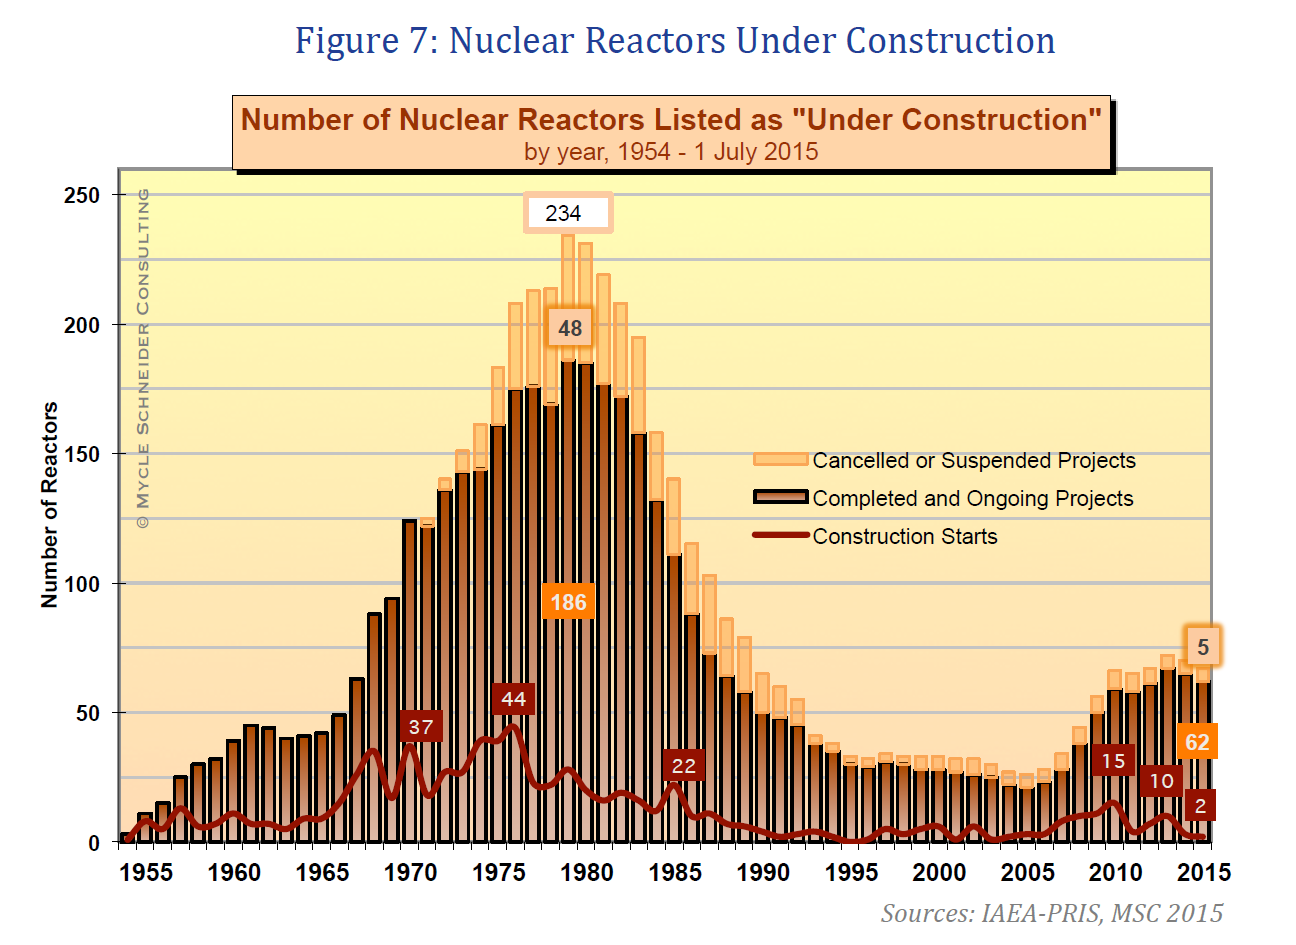 A bar graphic graphic which shows the number of nuclear reactors listed as under construction vom 1954 to 1 July 2015.